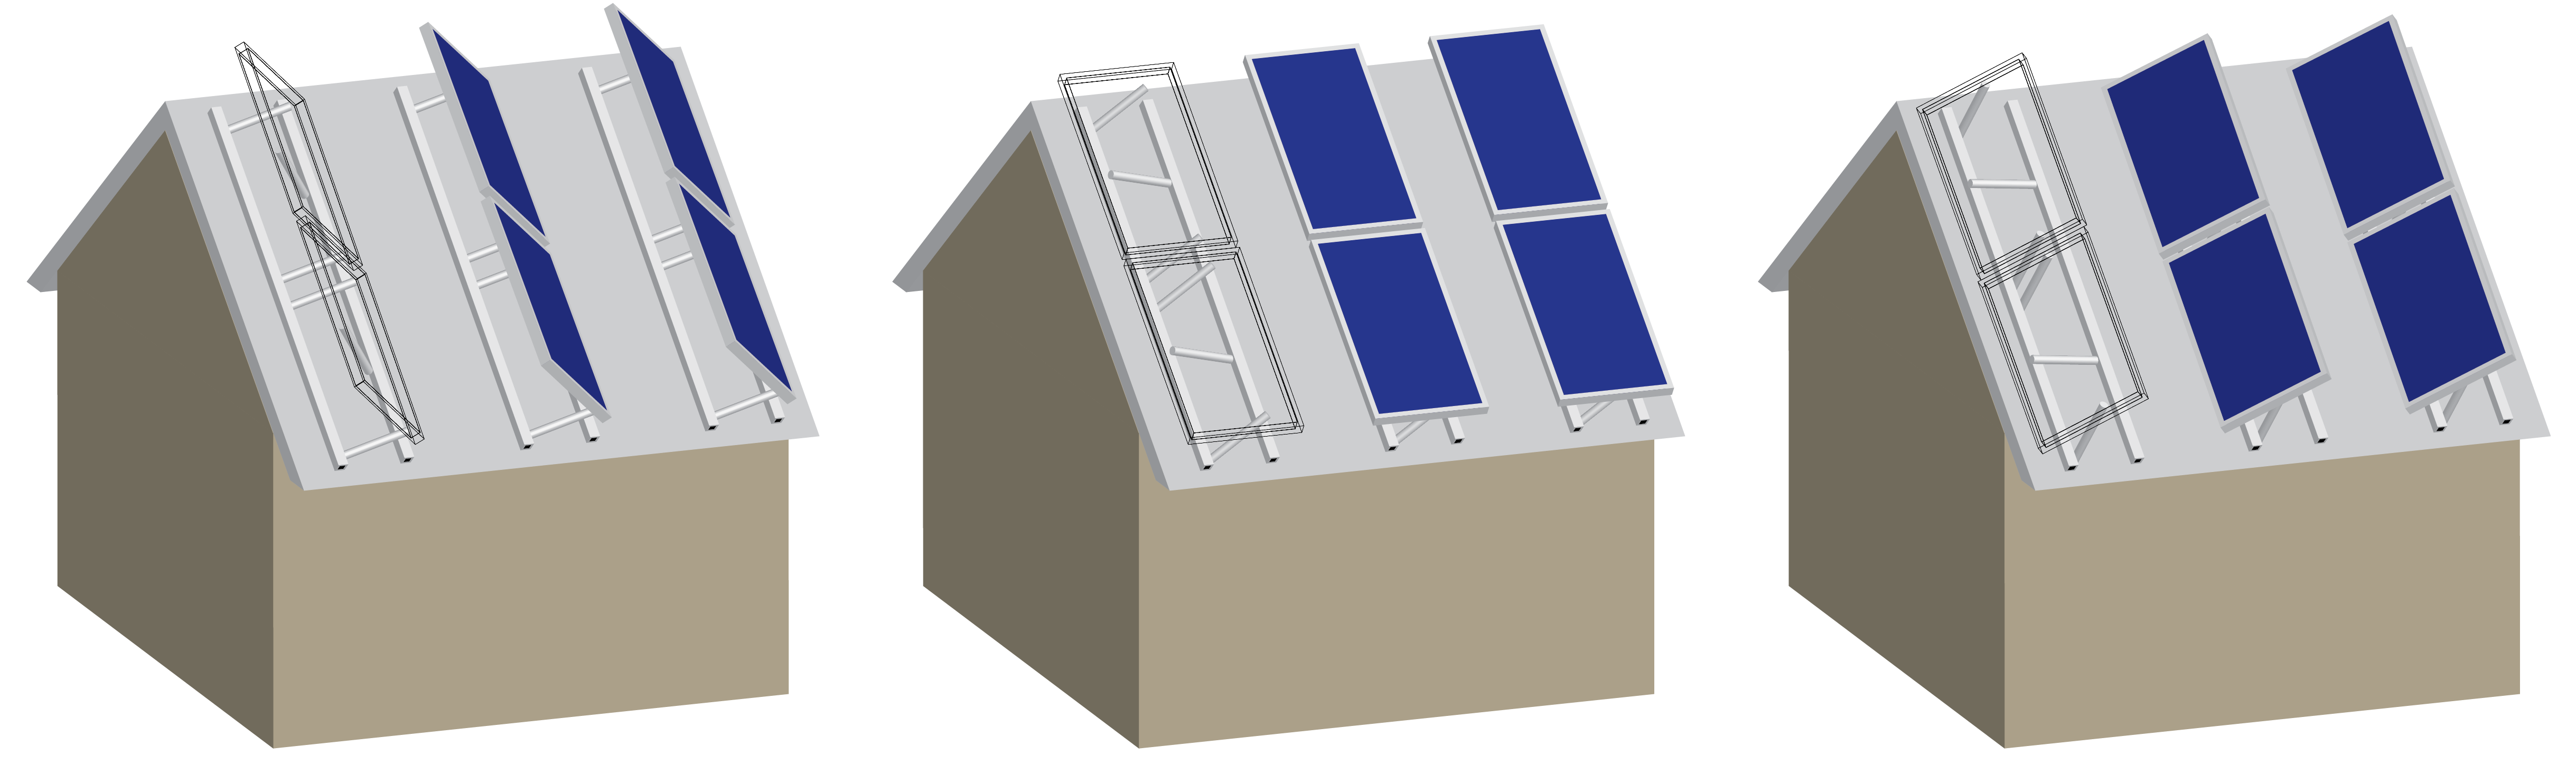 Cartoon schematic of inclined rooftop solar tracker